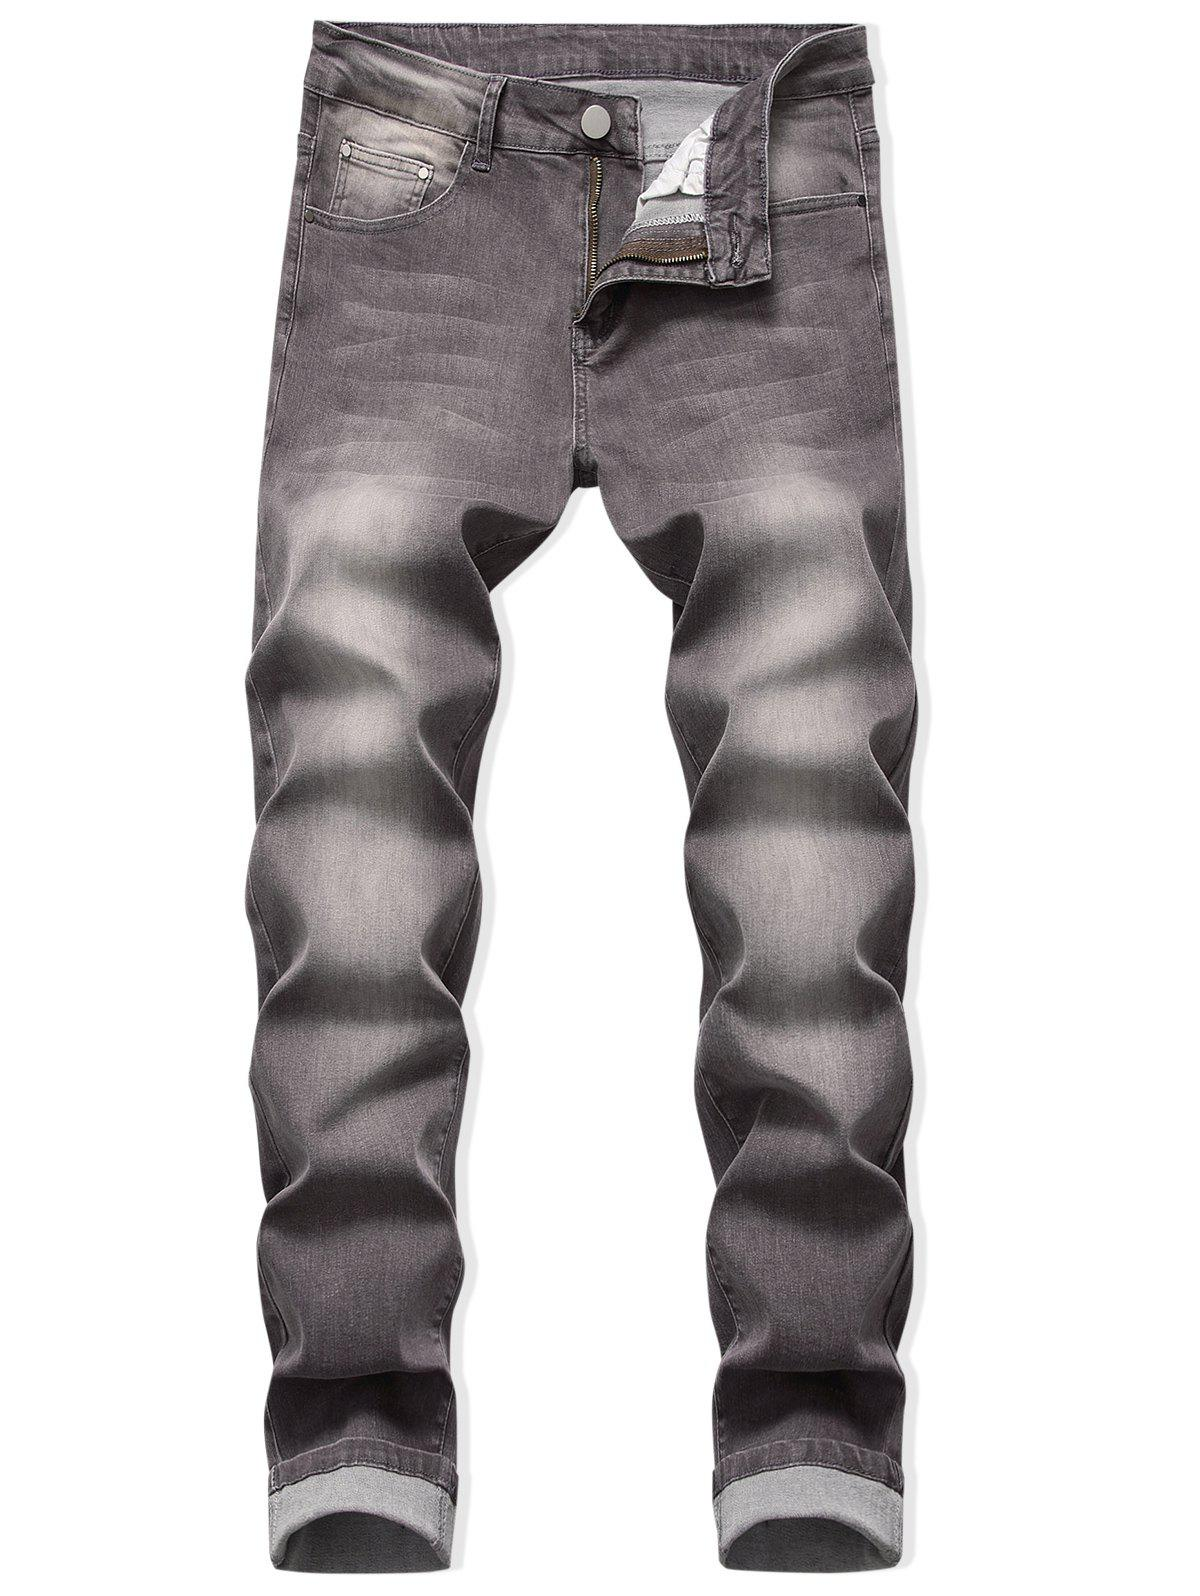 Chic Zip Fly Long Faded Wash Casual Jeans